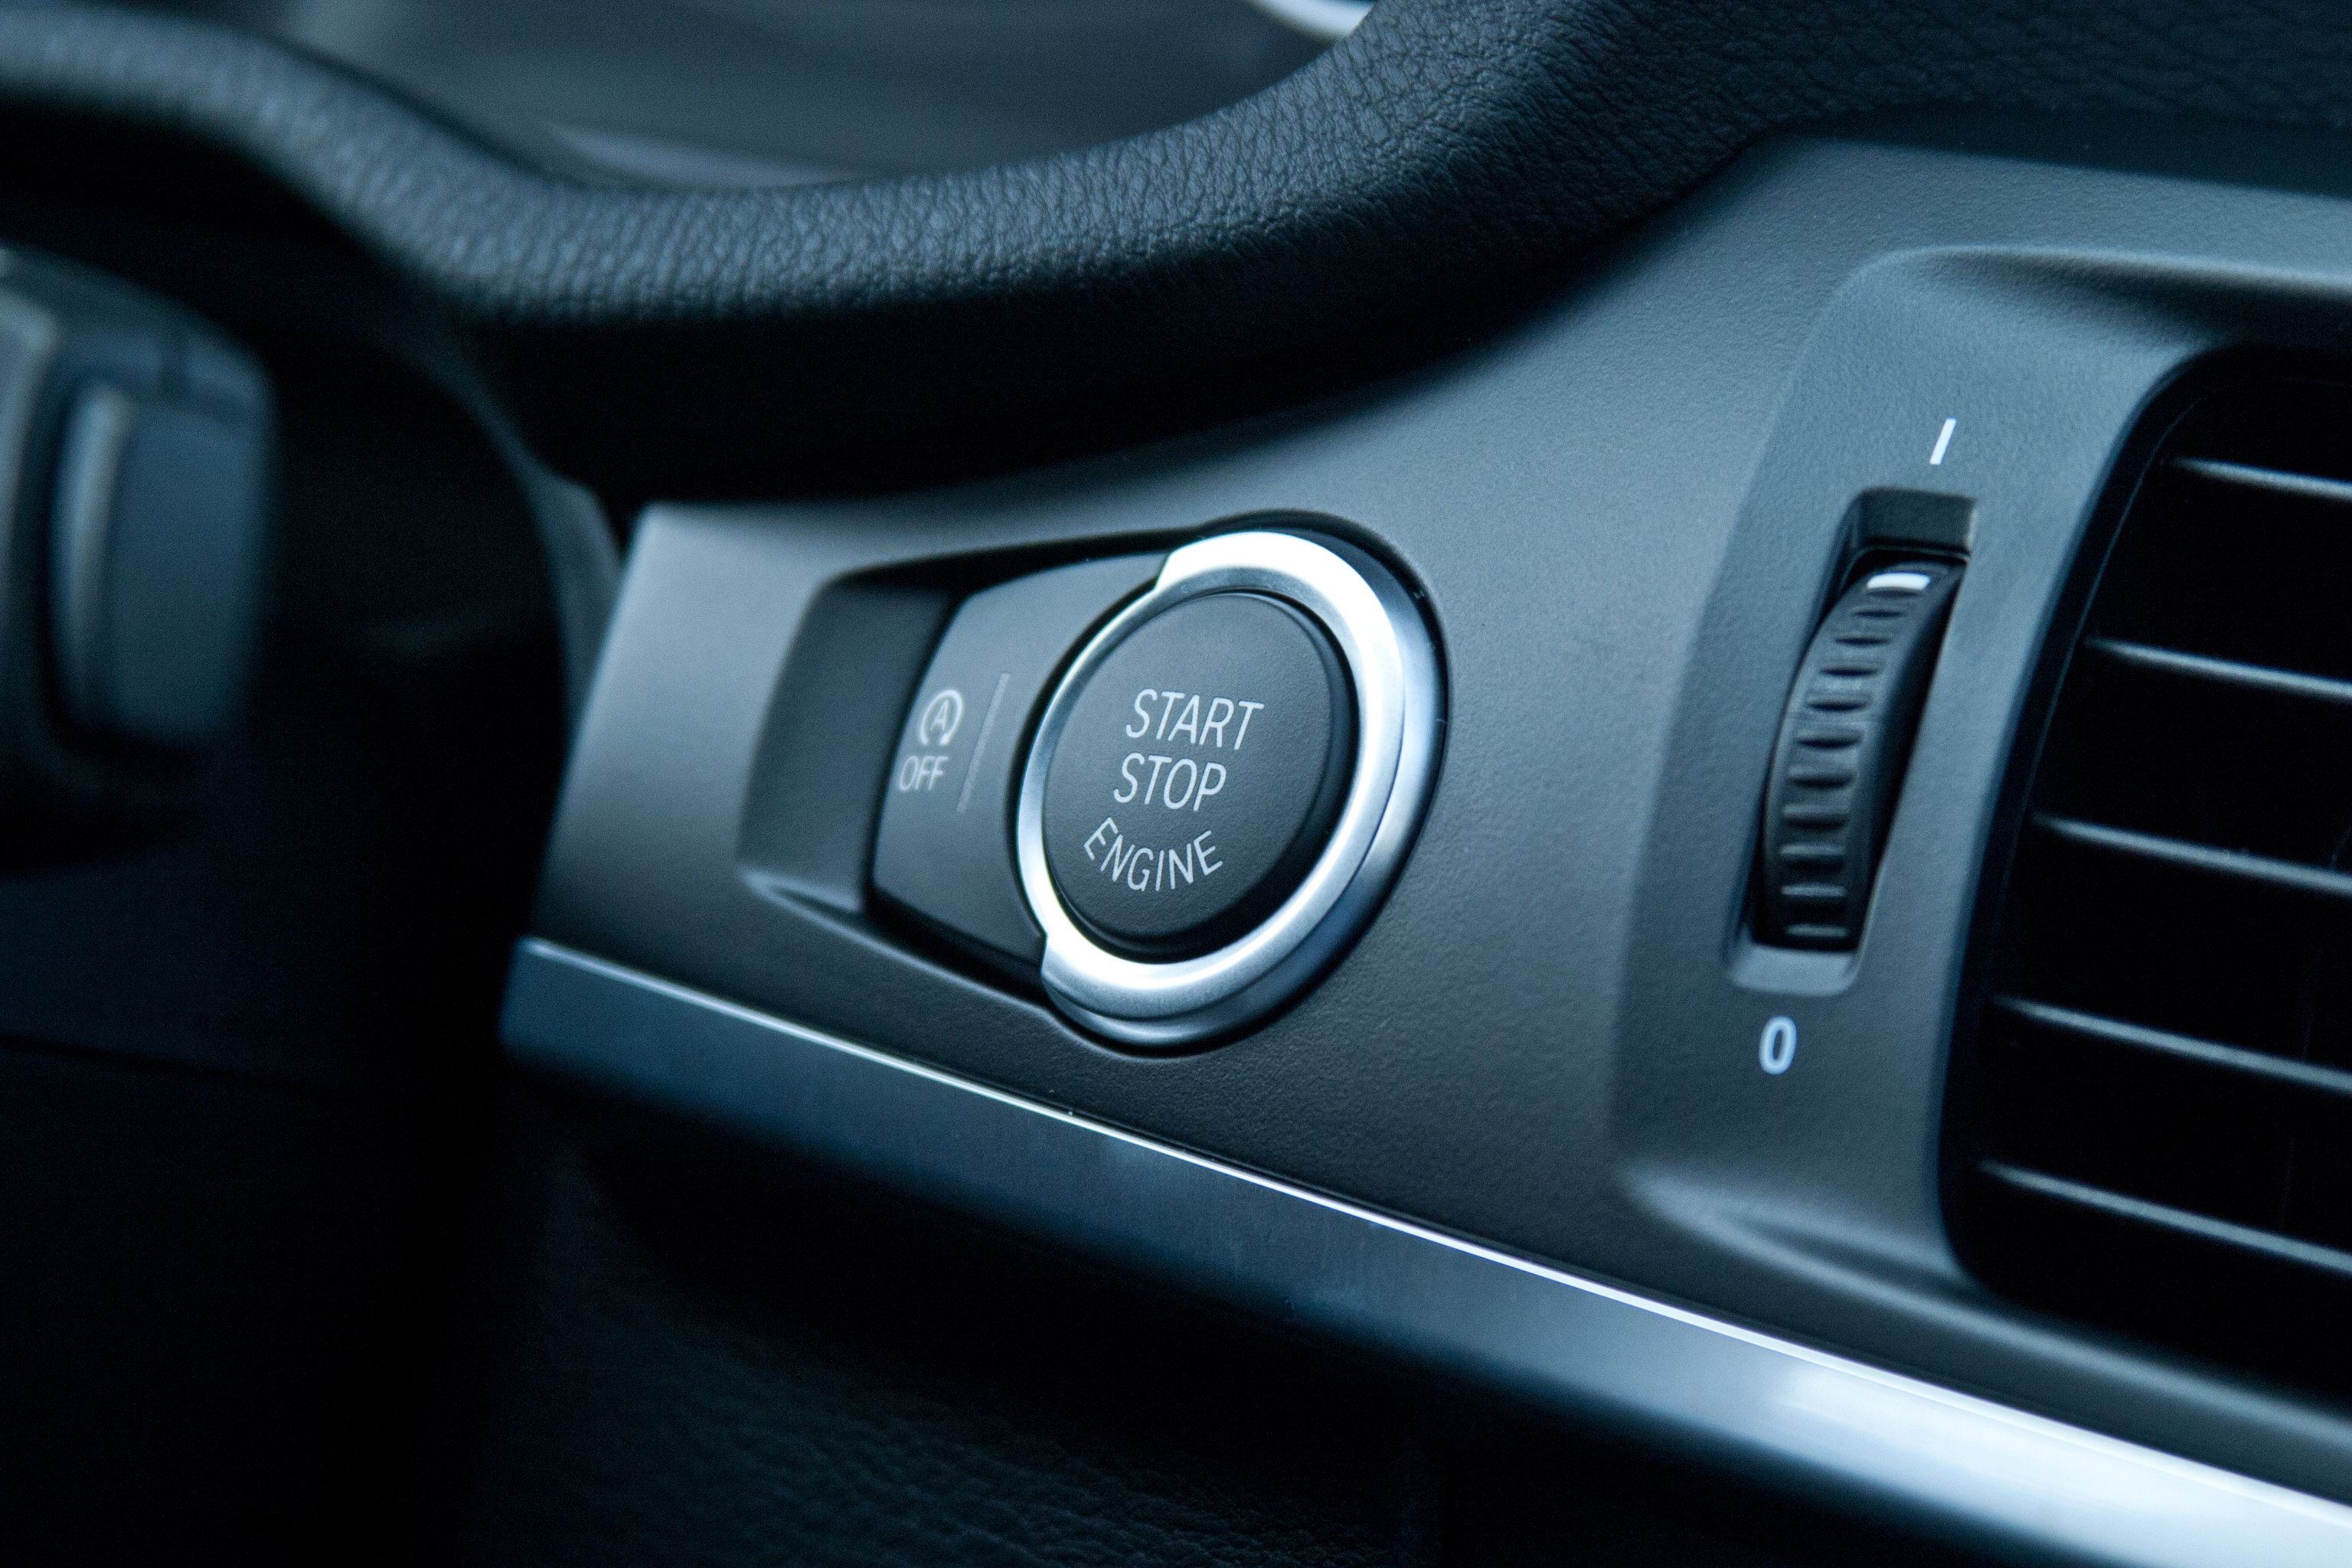 Keyless Car Ignition May Be a Safety Hazard